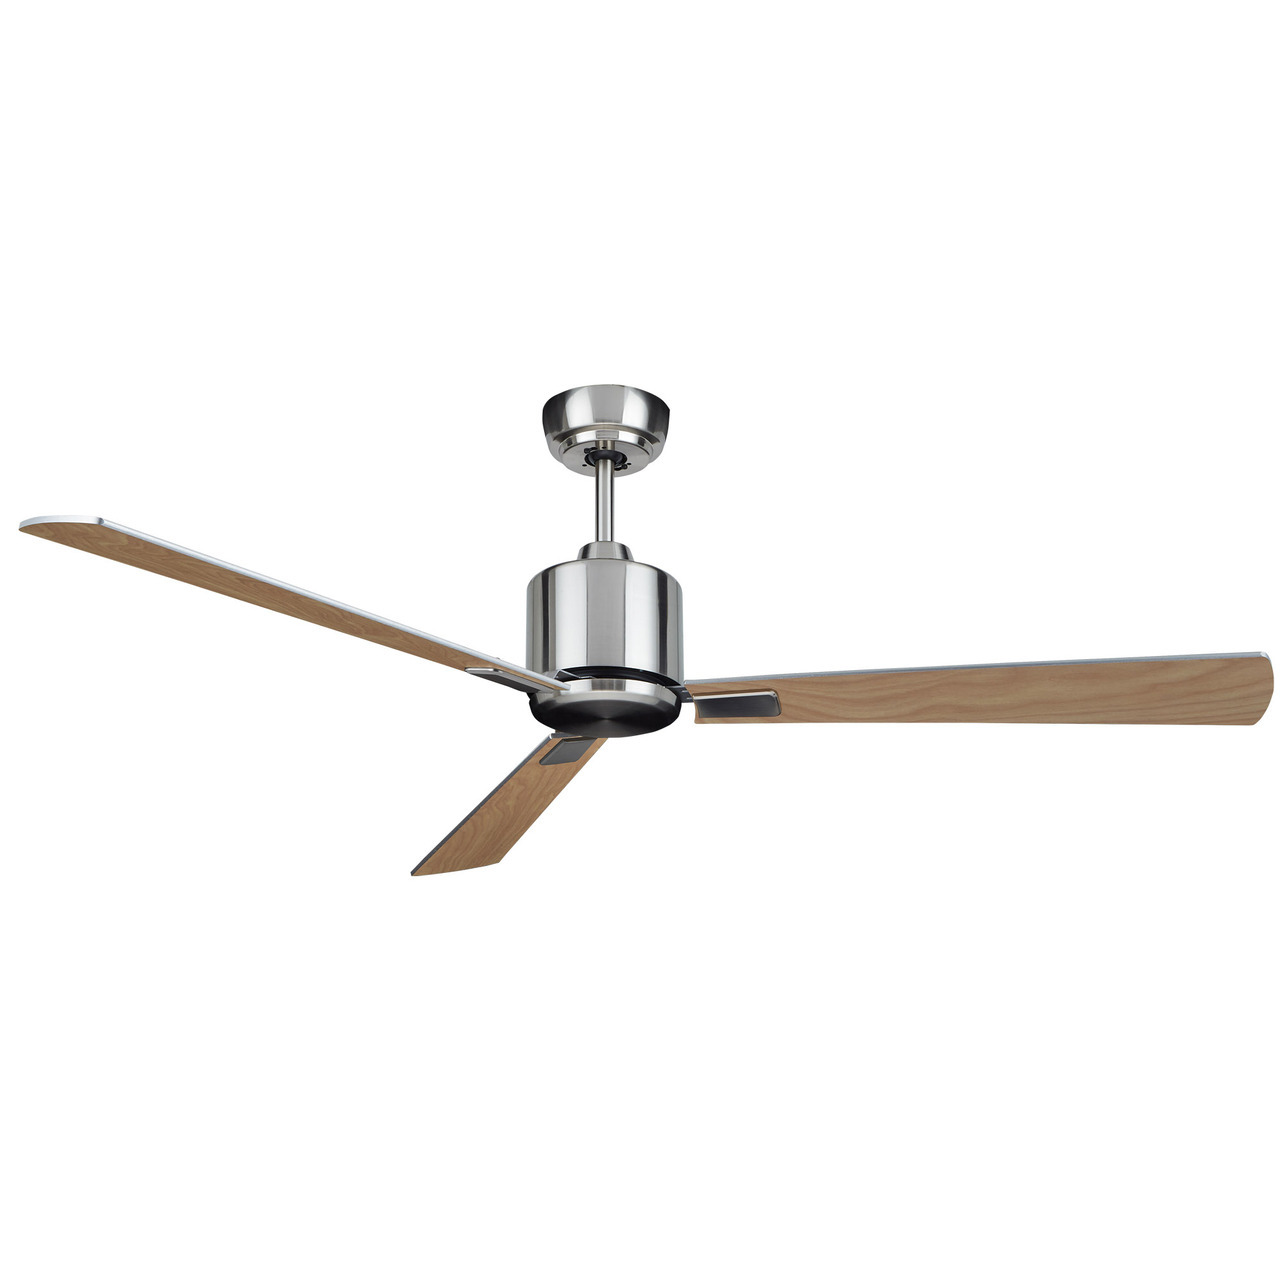 KittyHawk Ceiling Fan Silver 52in